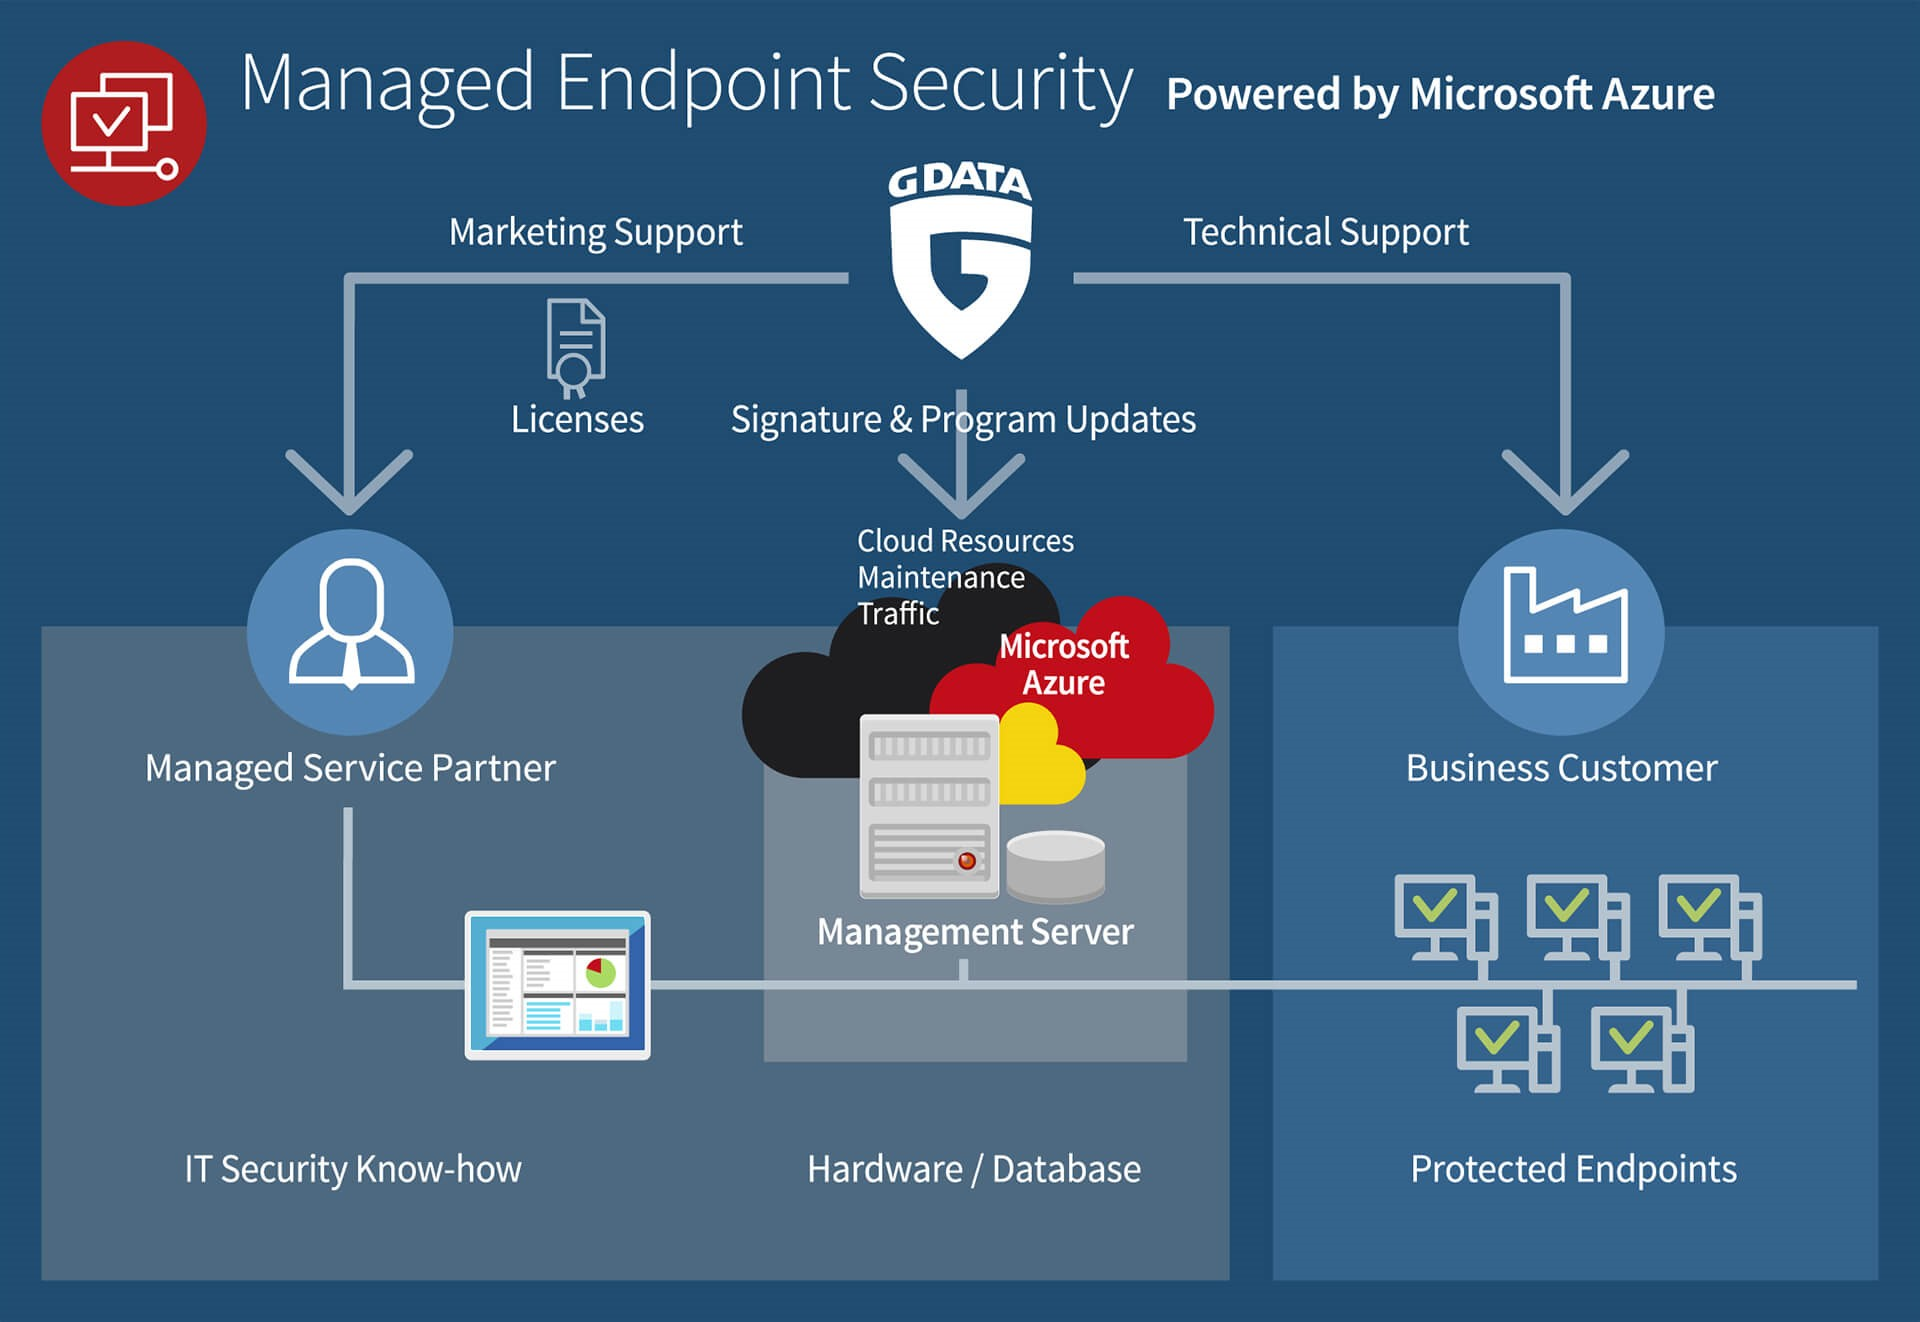 Healthcare Security As A Service From The Cloud Microsoft Industry Database 2017 Partners Manage And Update Customer Endpoints Via G Data Management Server With Managed Endpoint Powered By Azure